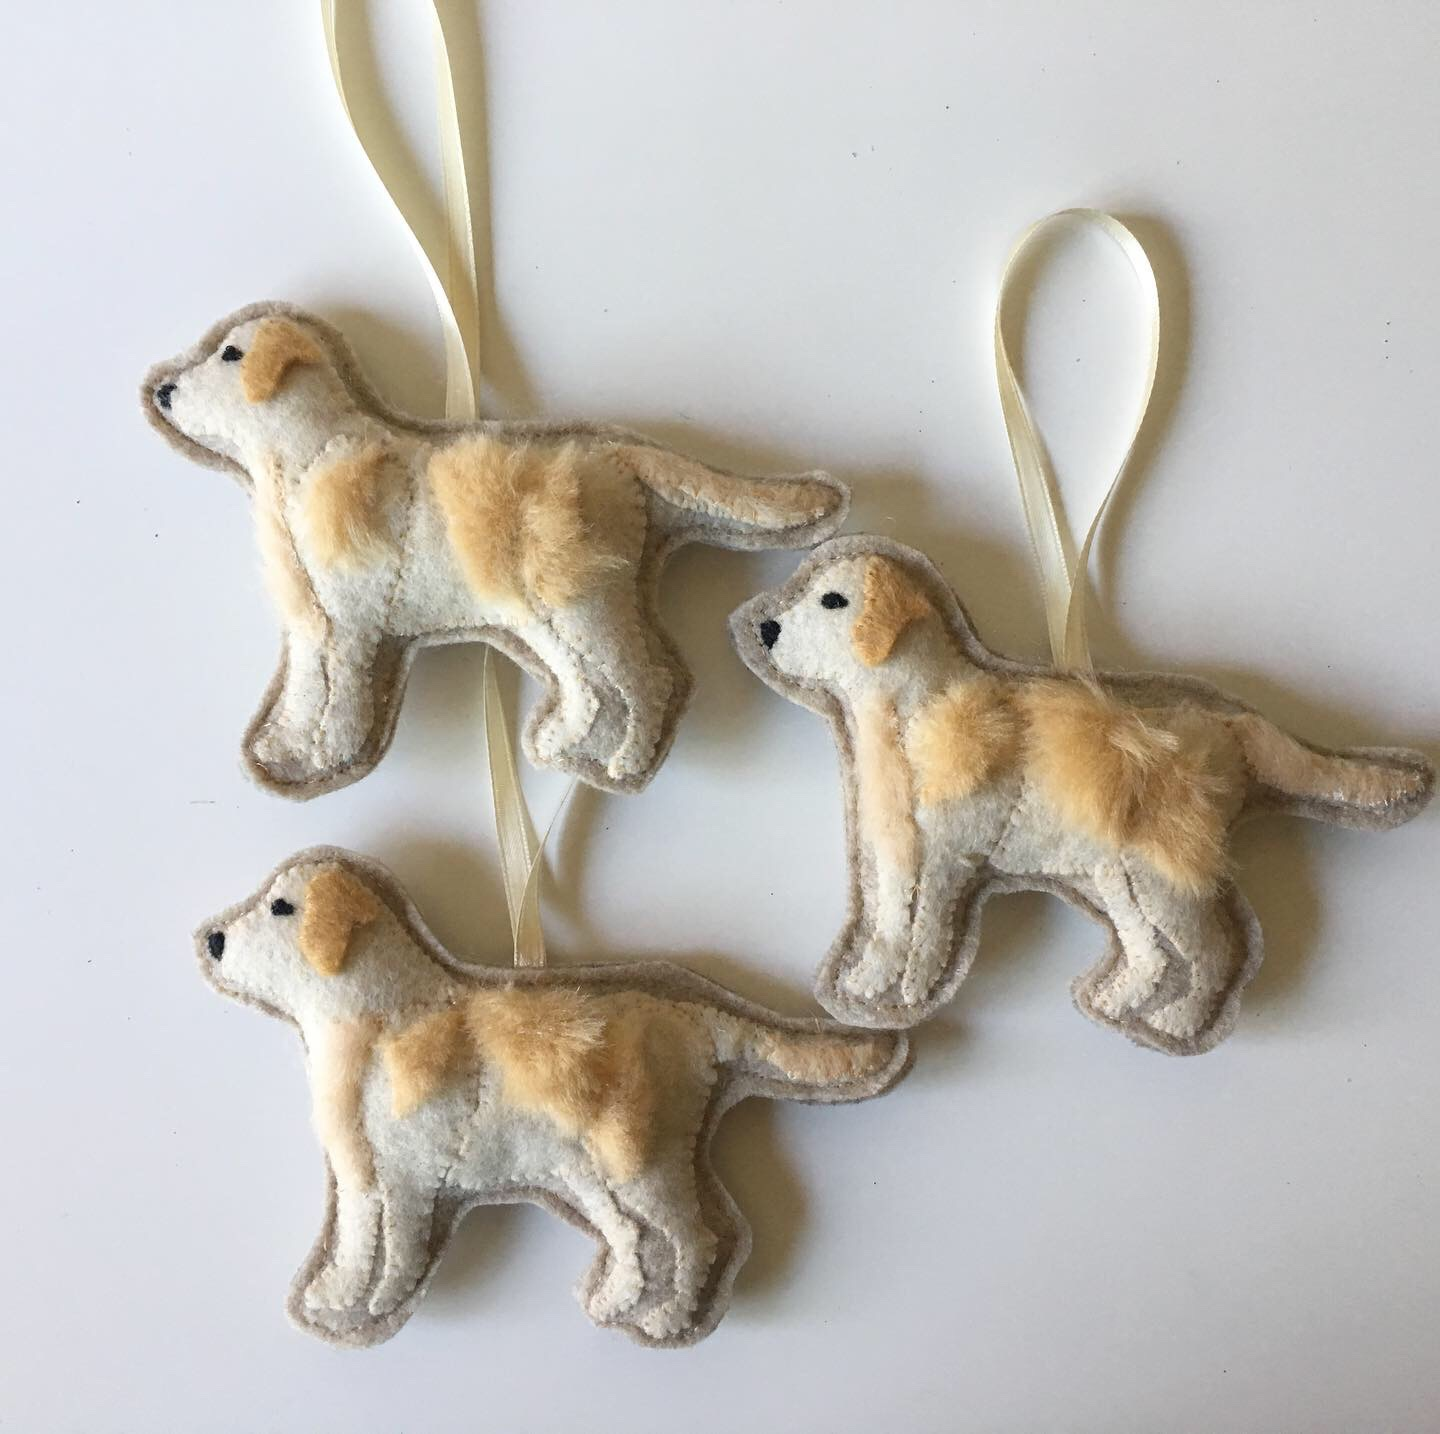 Yellow Labrador Retriever Ornaments, Hand-Appliqued Felt and Faux Fur, Approx. 4 x 6 inches, 2019